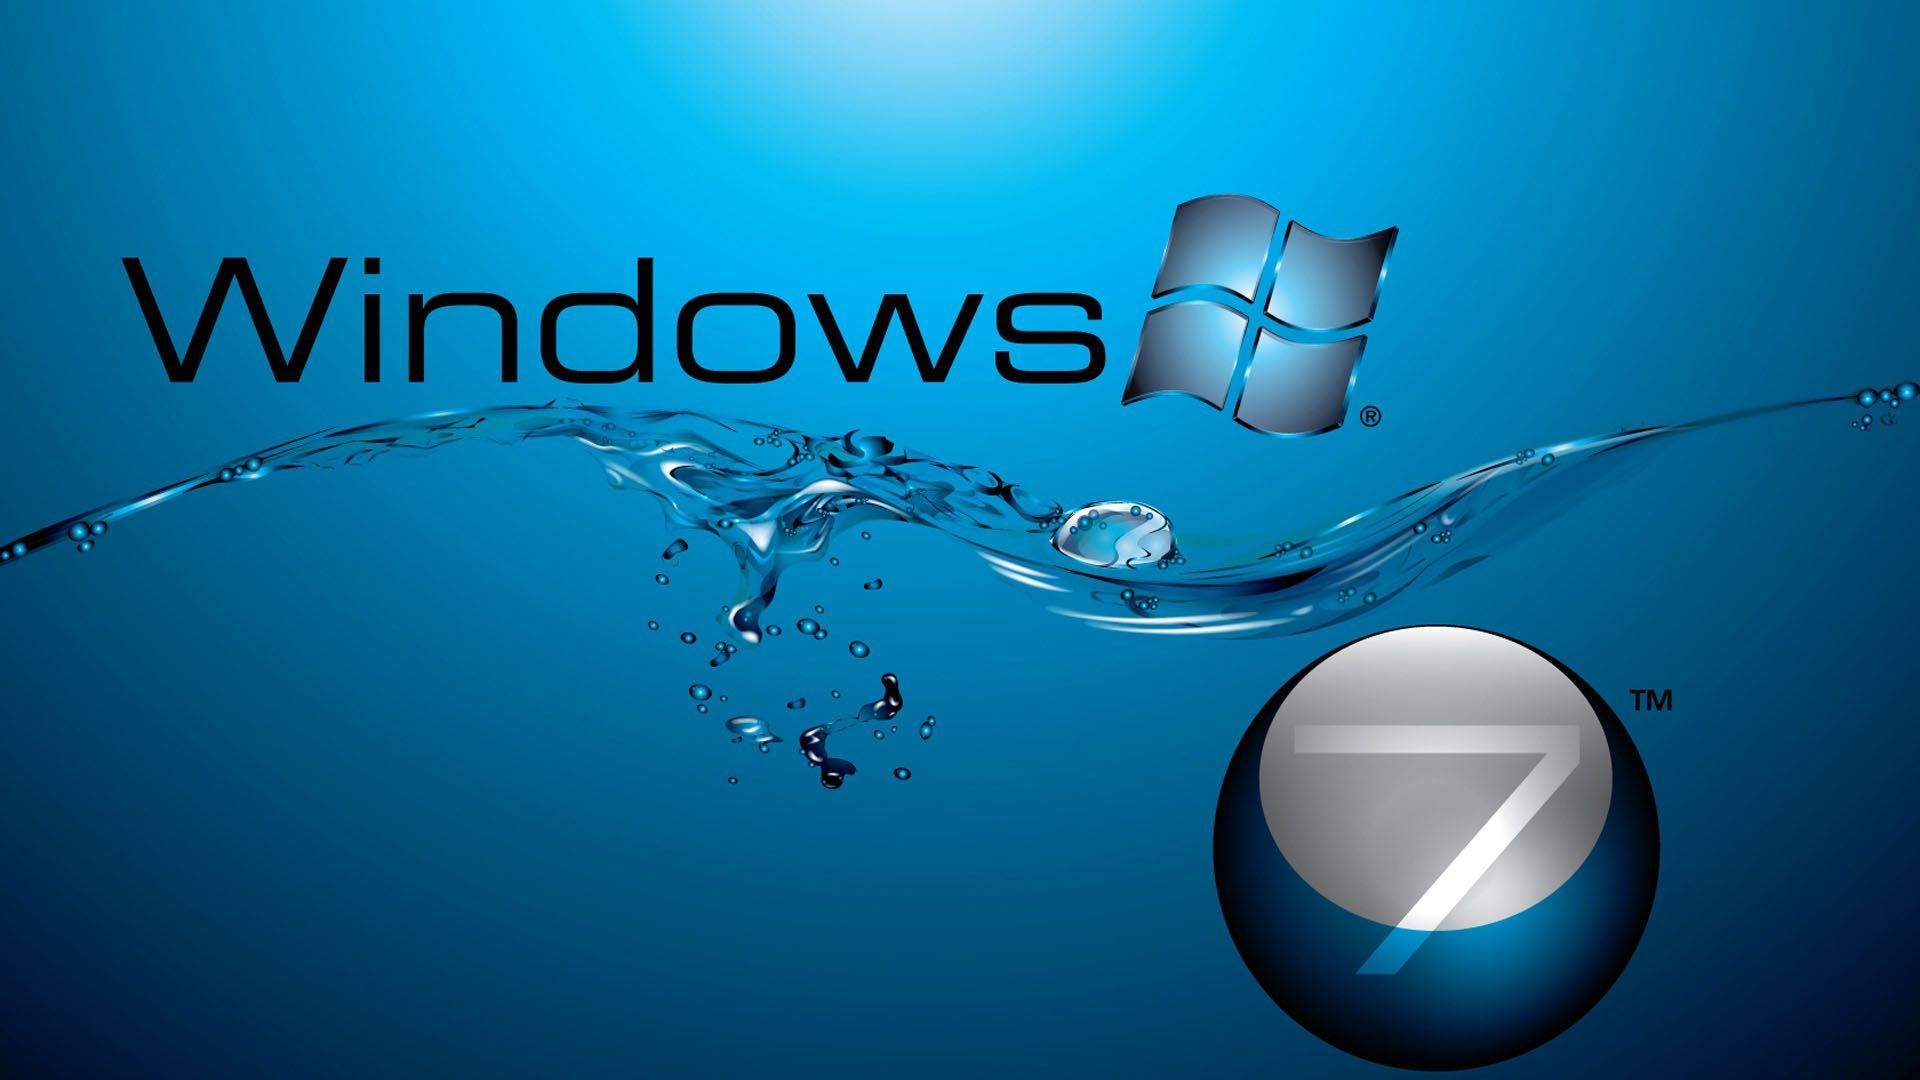 Windows 7 Hd Wallpapers 1080p Wallpaper Cave Windows Desktop Wallpaper Windows Wallpaper Samsung Wallpaper